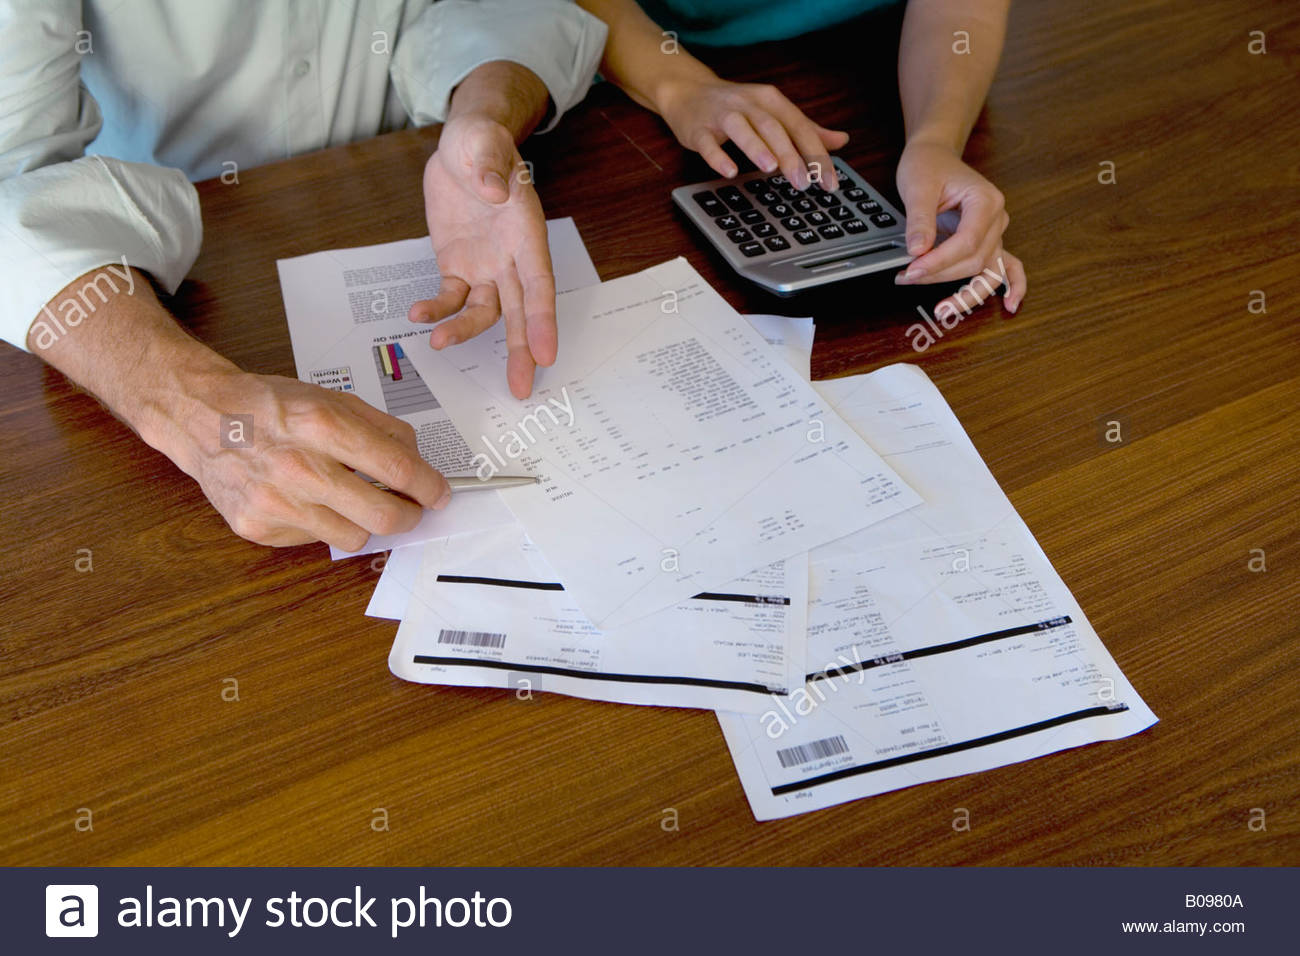 Mature couple looking at bills, using calculator, detail of hands - Stock Image